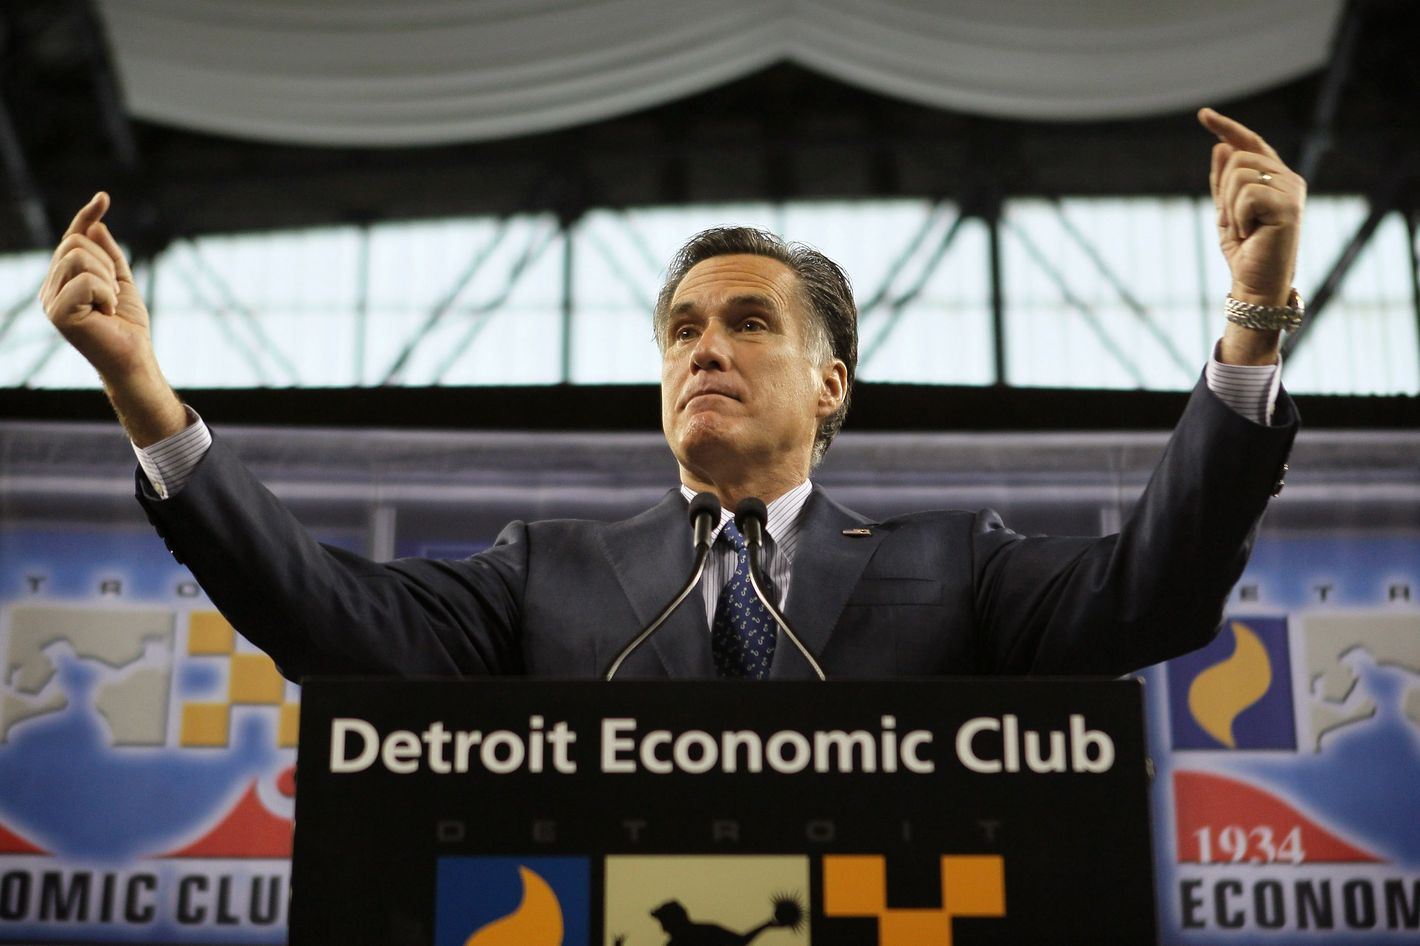 Republican presidential candidate, former Massachusetts Gov. Mitt Romney speaks to members of the Detroit Economic Club during a luncheon at Ford Field on February 24, 2012.